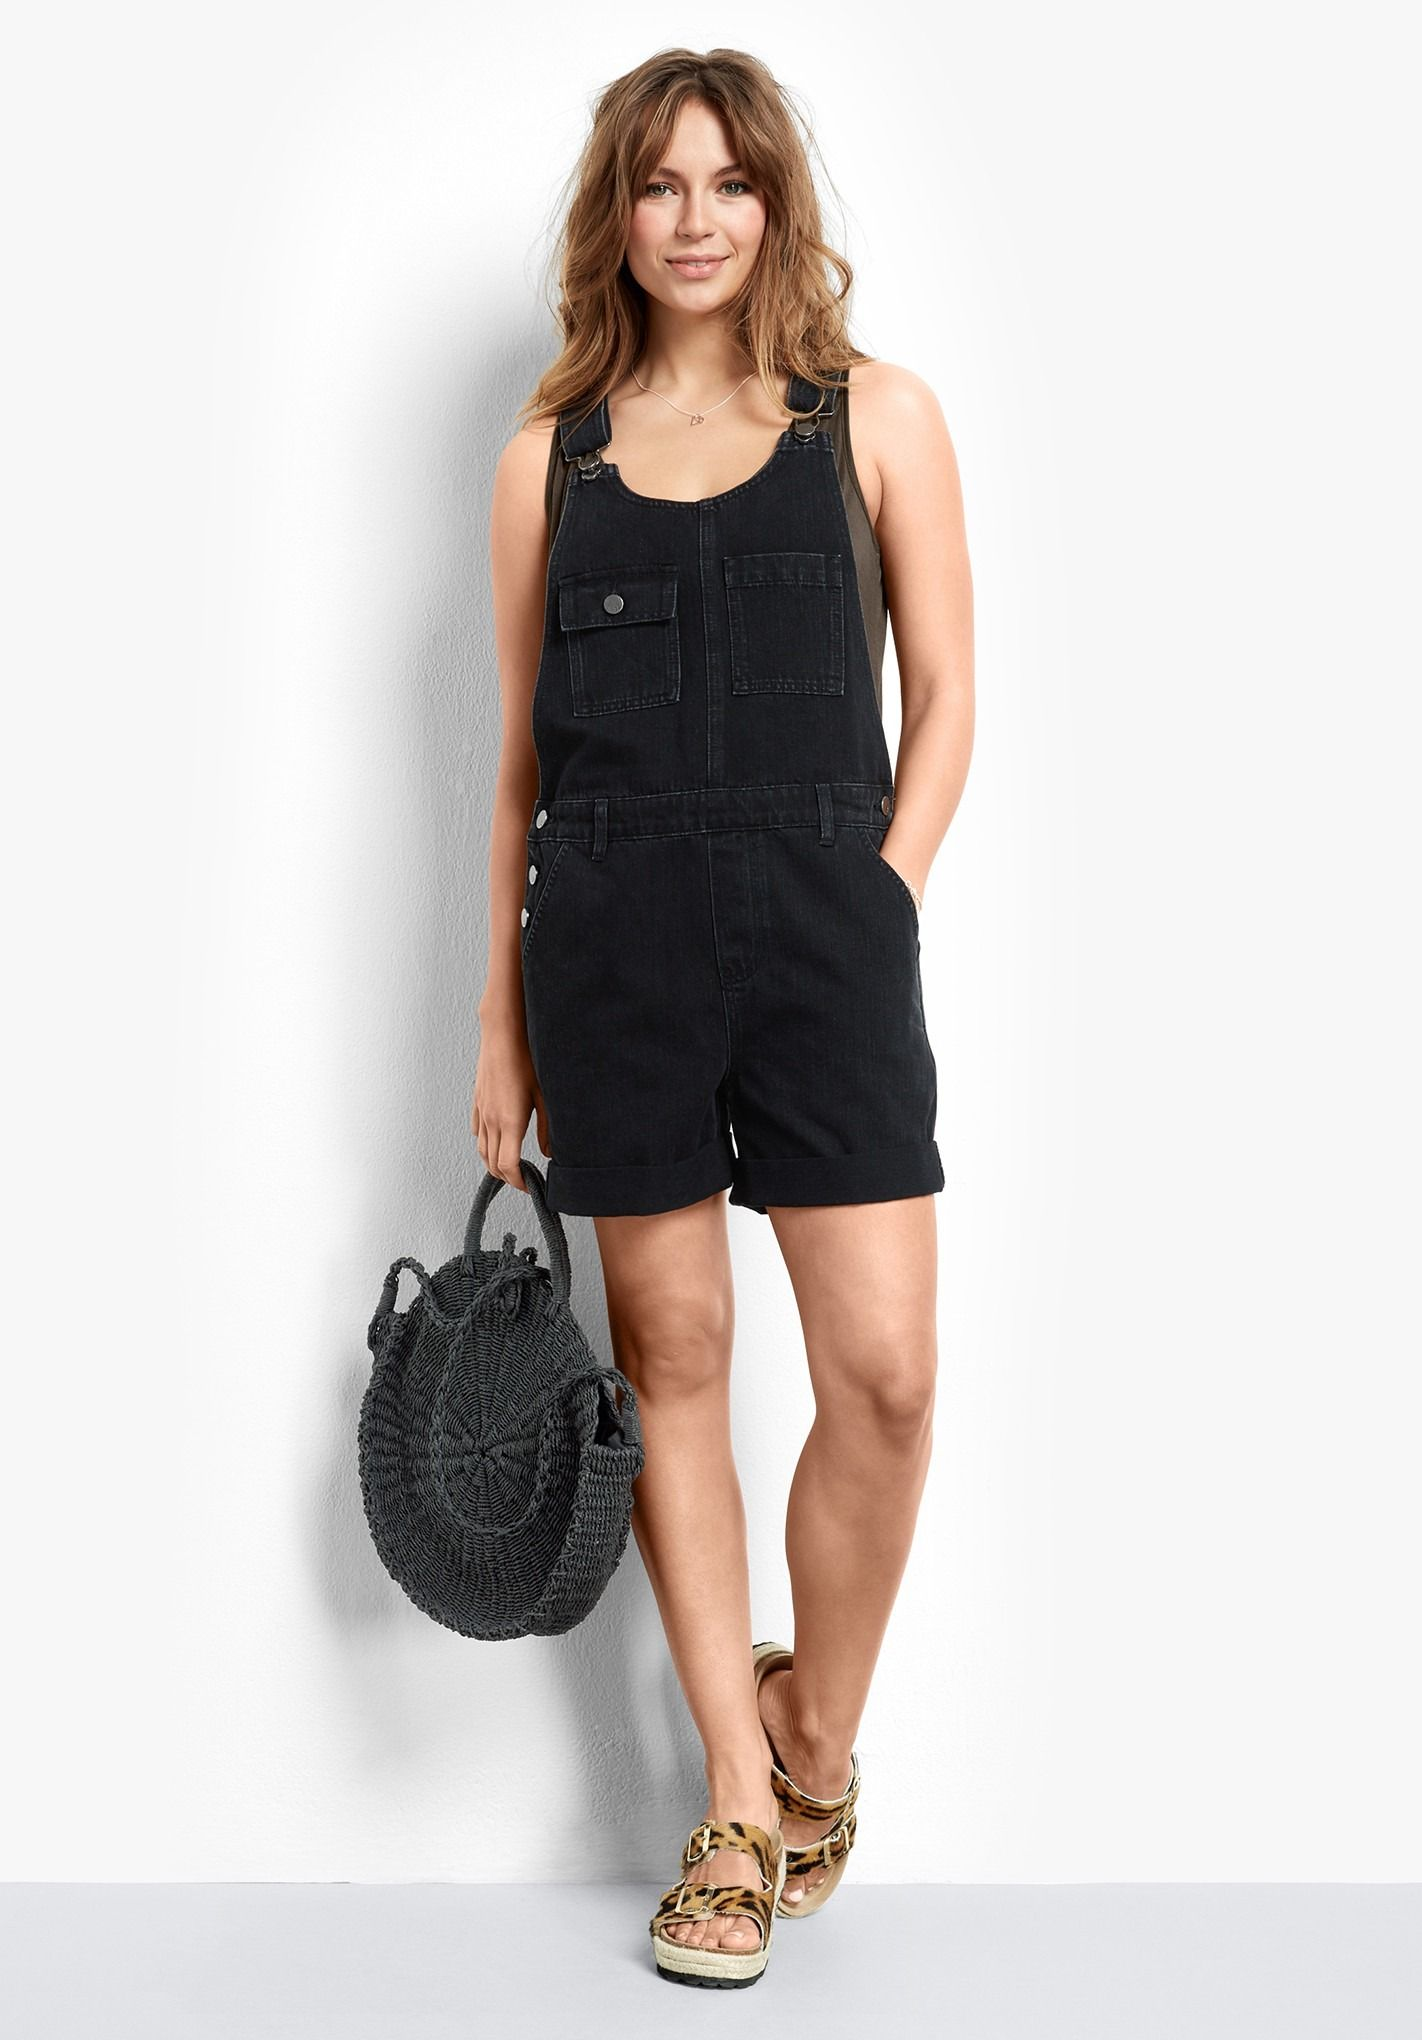 03834706603 A must-have this season, our short denim dungarees are perfect for weekend  style. Pair with our Cotton Slub V tee and Brighton sandals for an  effortless ...